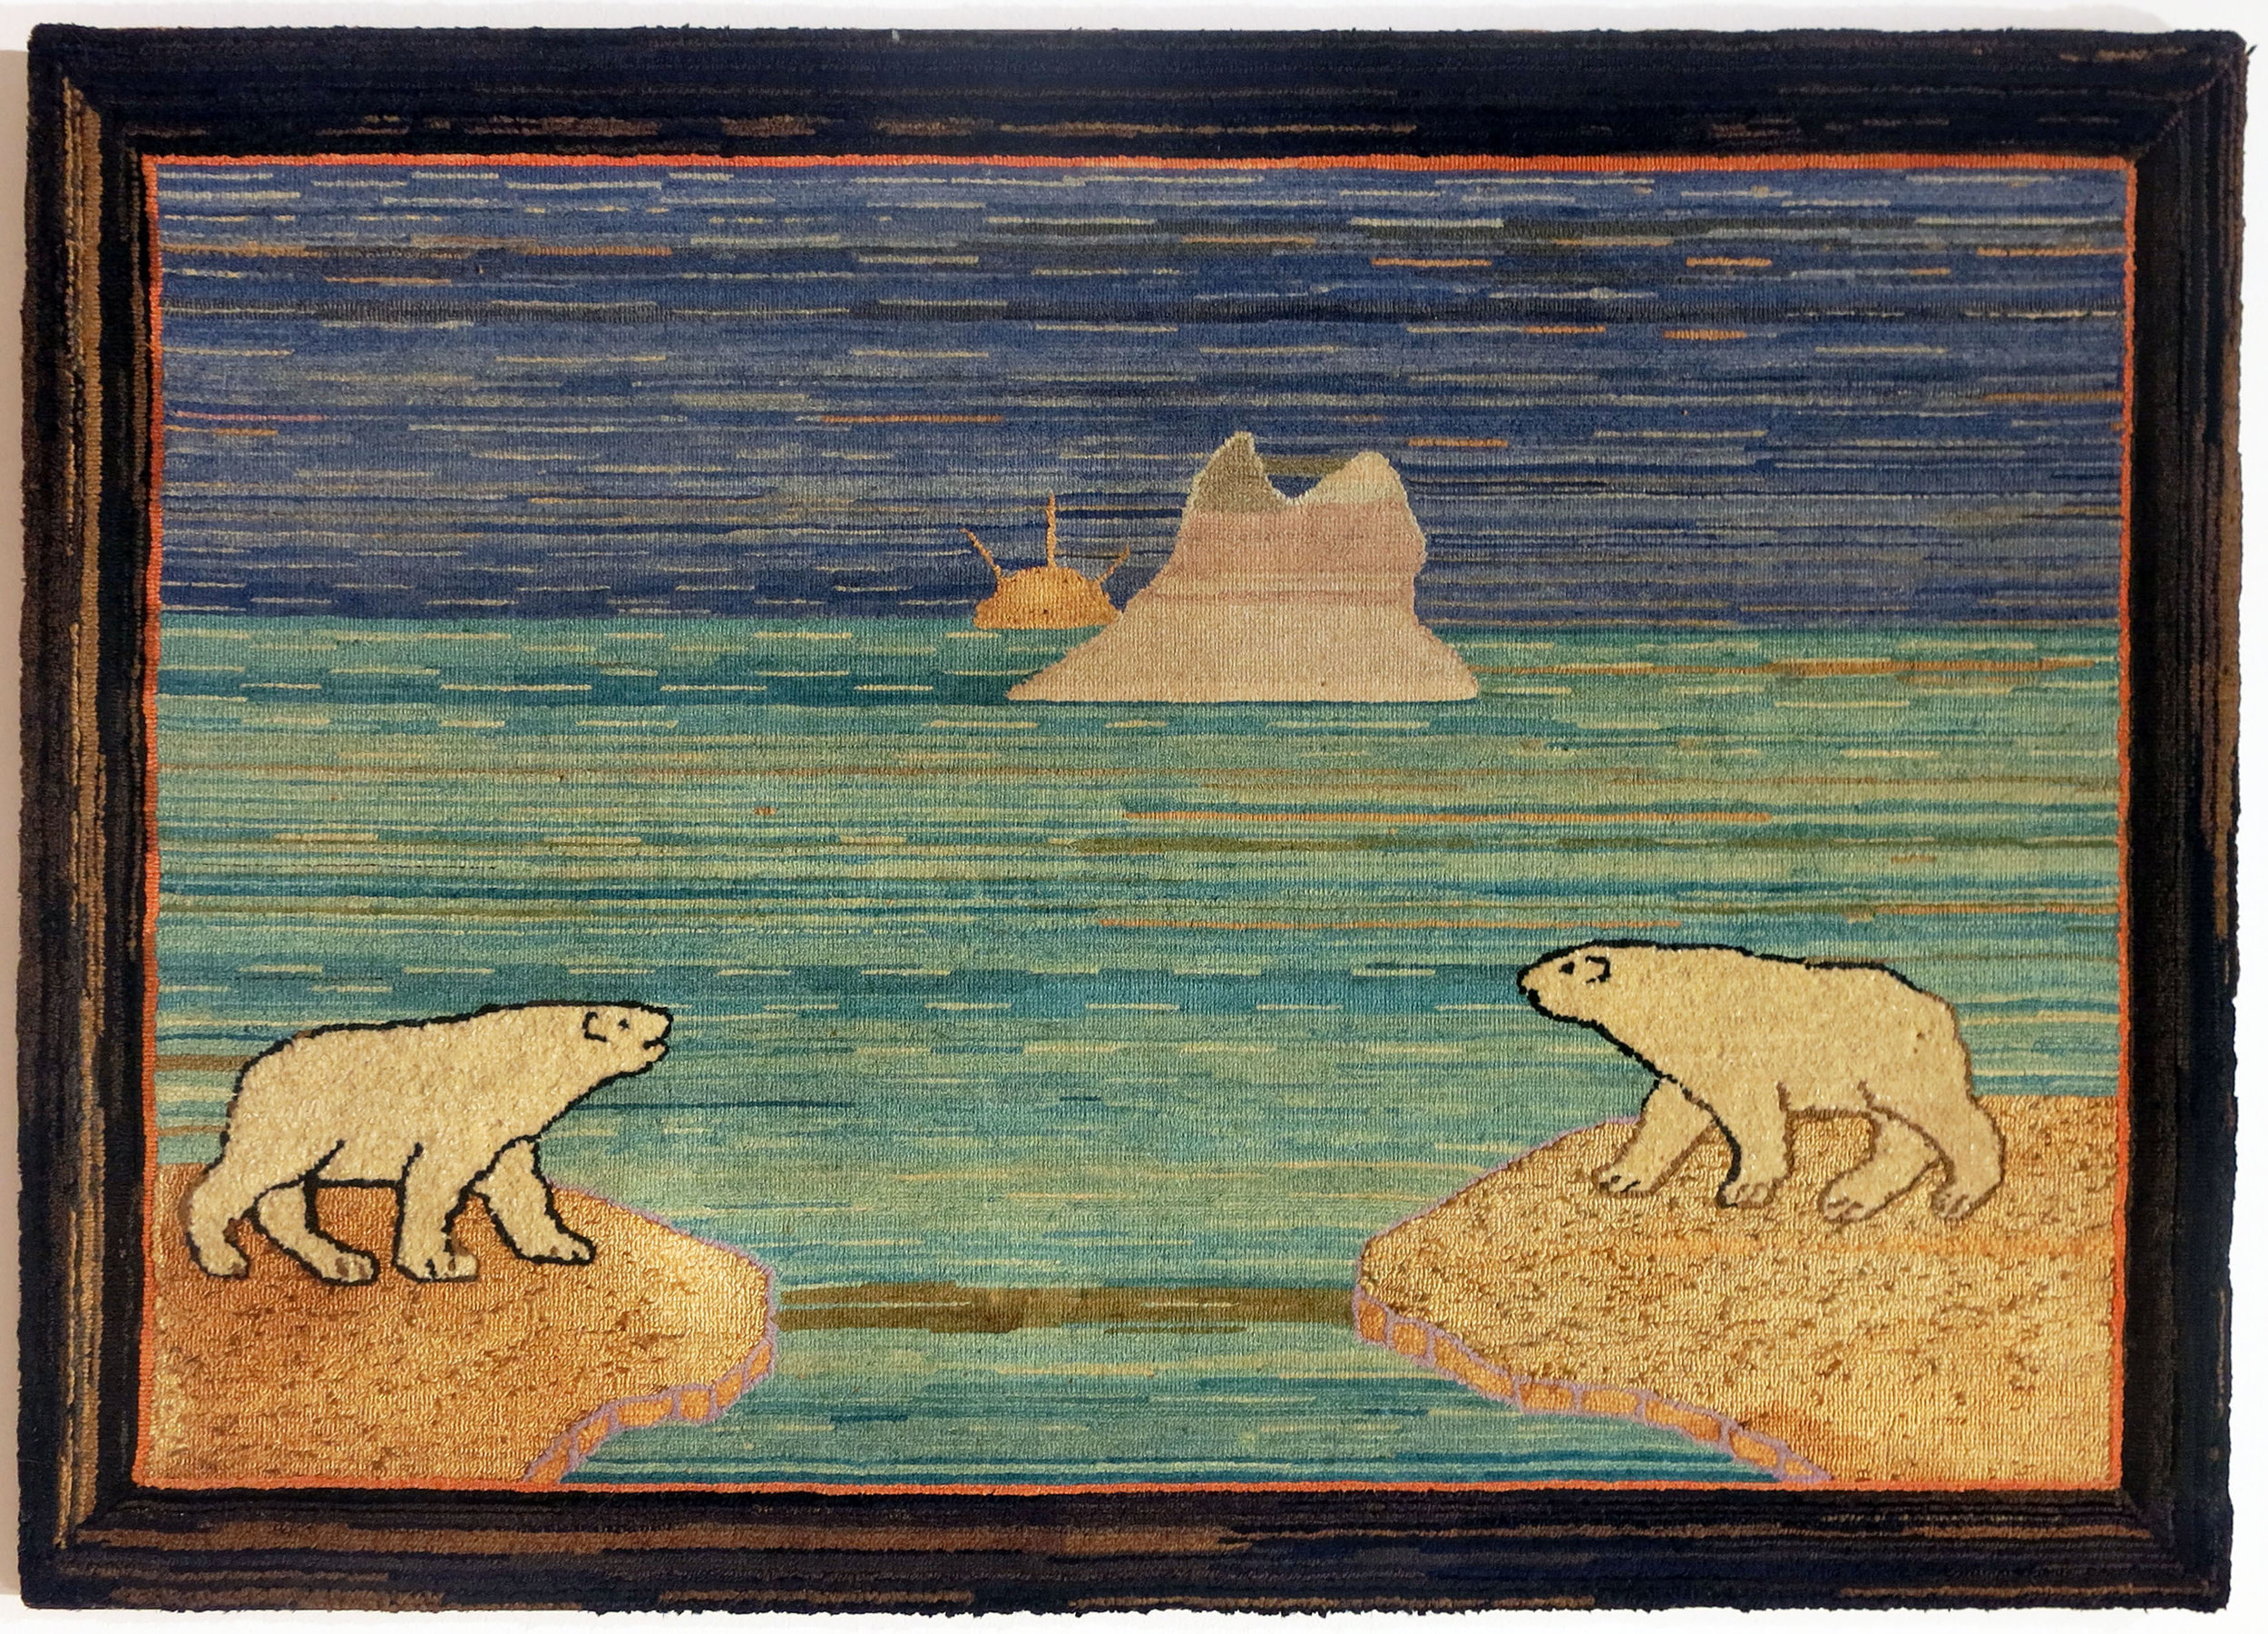 Anonymous, The Grenfell Mission, Two Polar Bears on Ice!, produced by 1916, cotton, wool, silk, and rayon; dyed, 27h x 39w in.